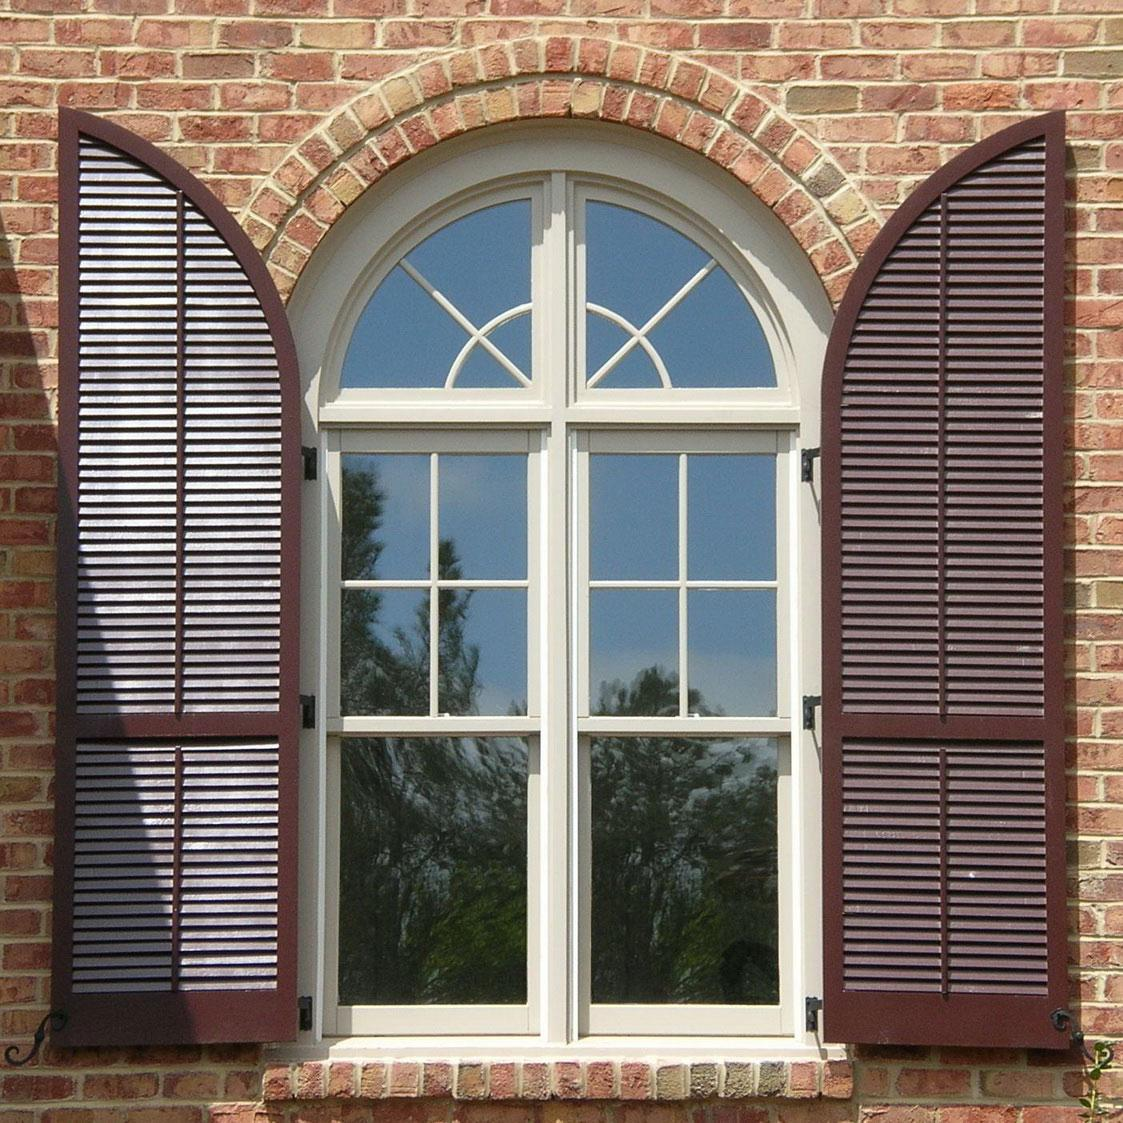 Exterior Windows stylish window shutters for window treatment ideas - interior